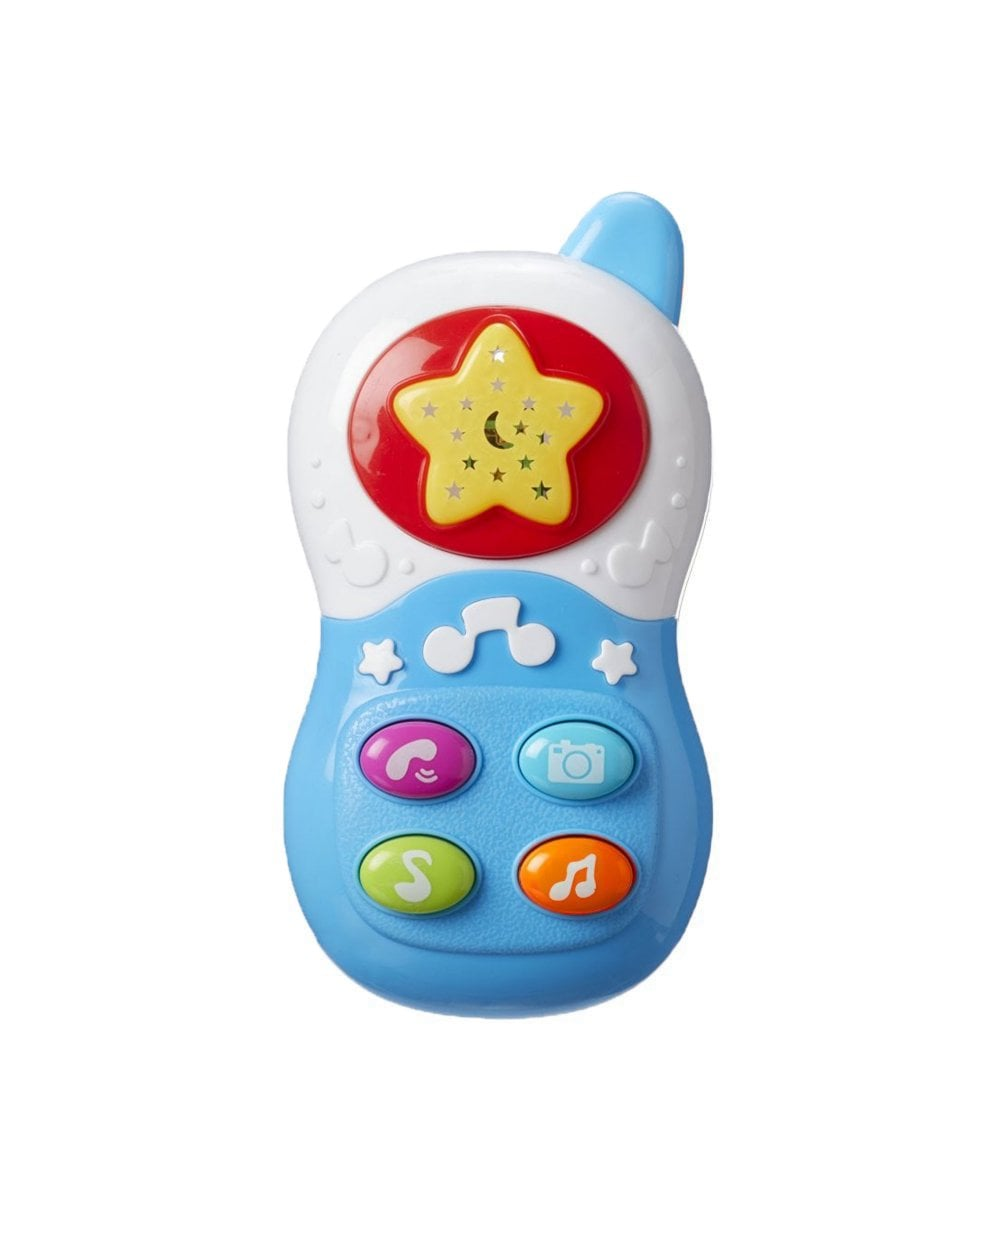 Nuby Baby Toy Mobile Phone Colour: Blue